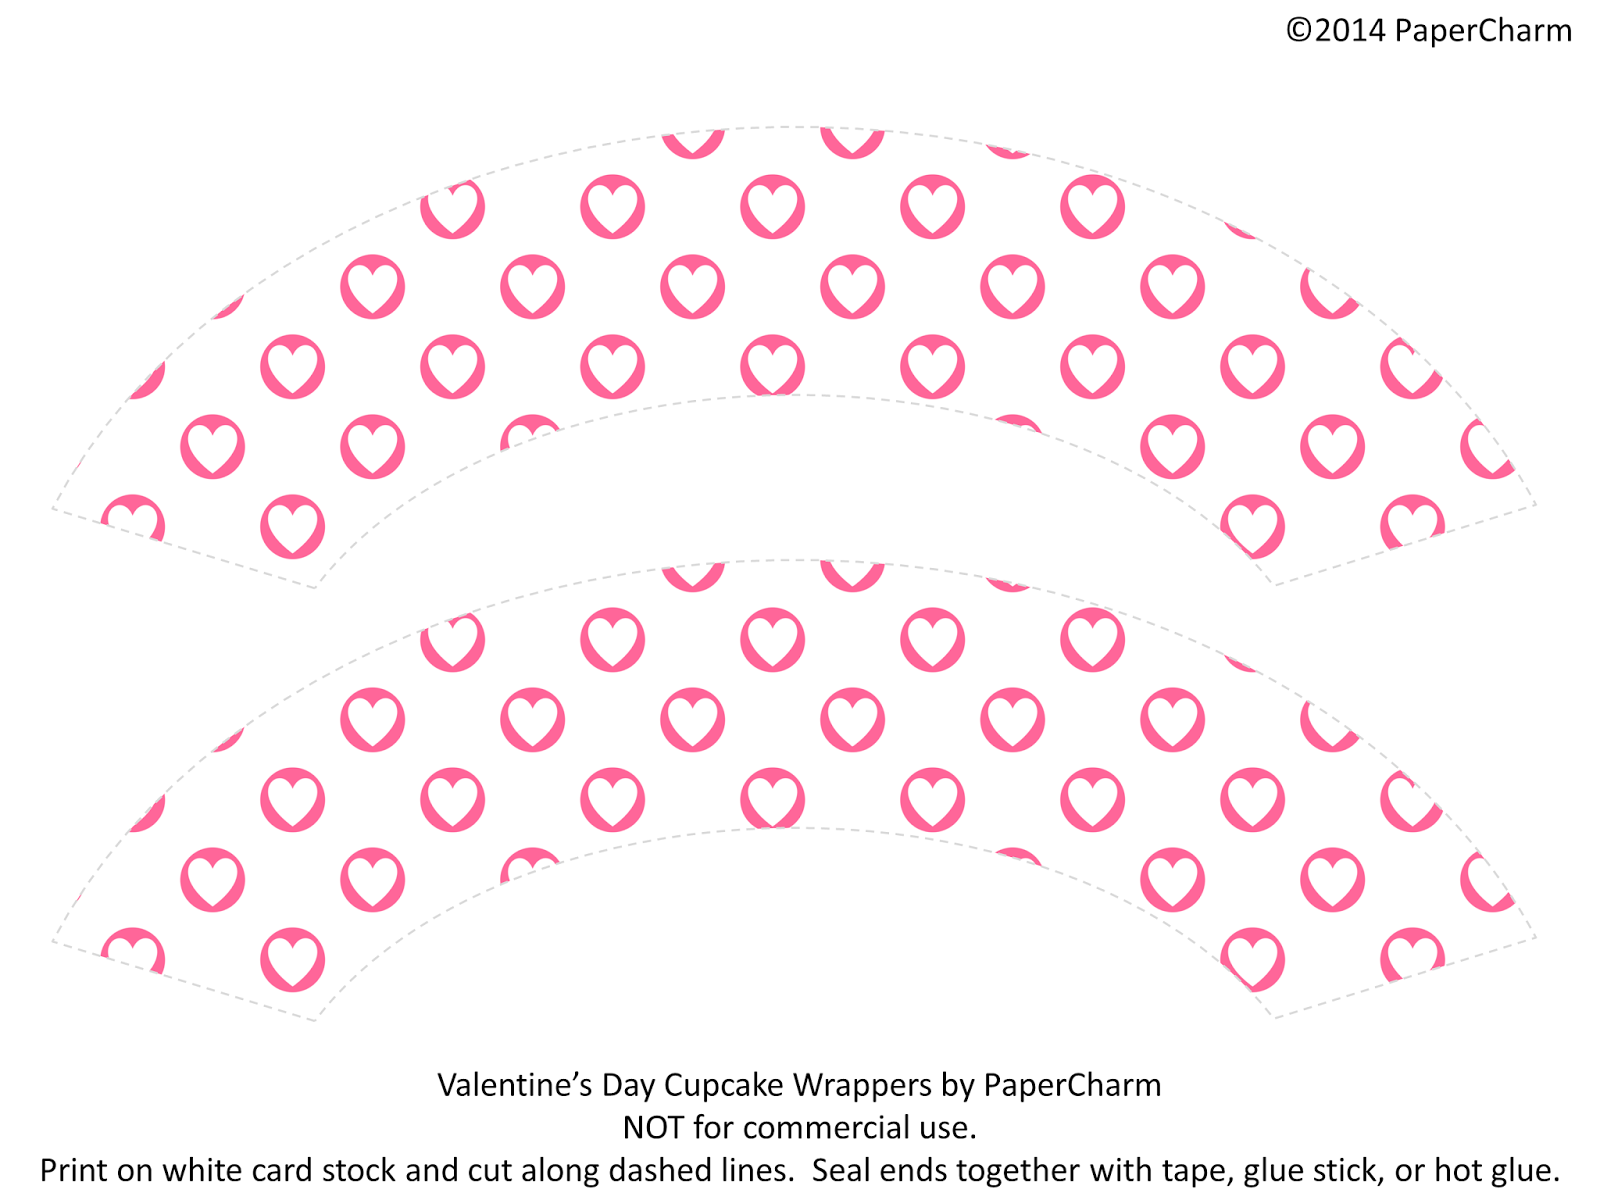 Valentine's Cupcake Wrappers by PaperCharm